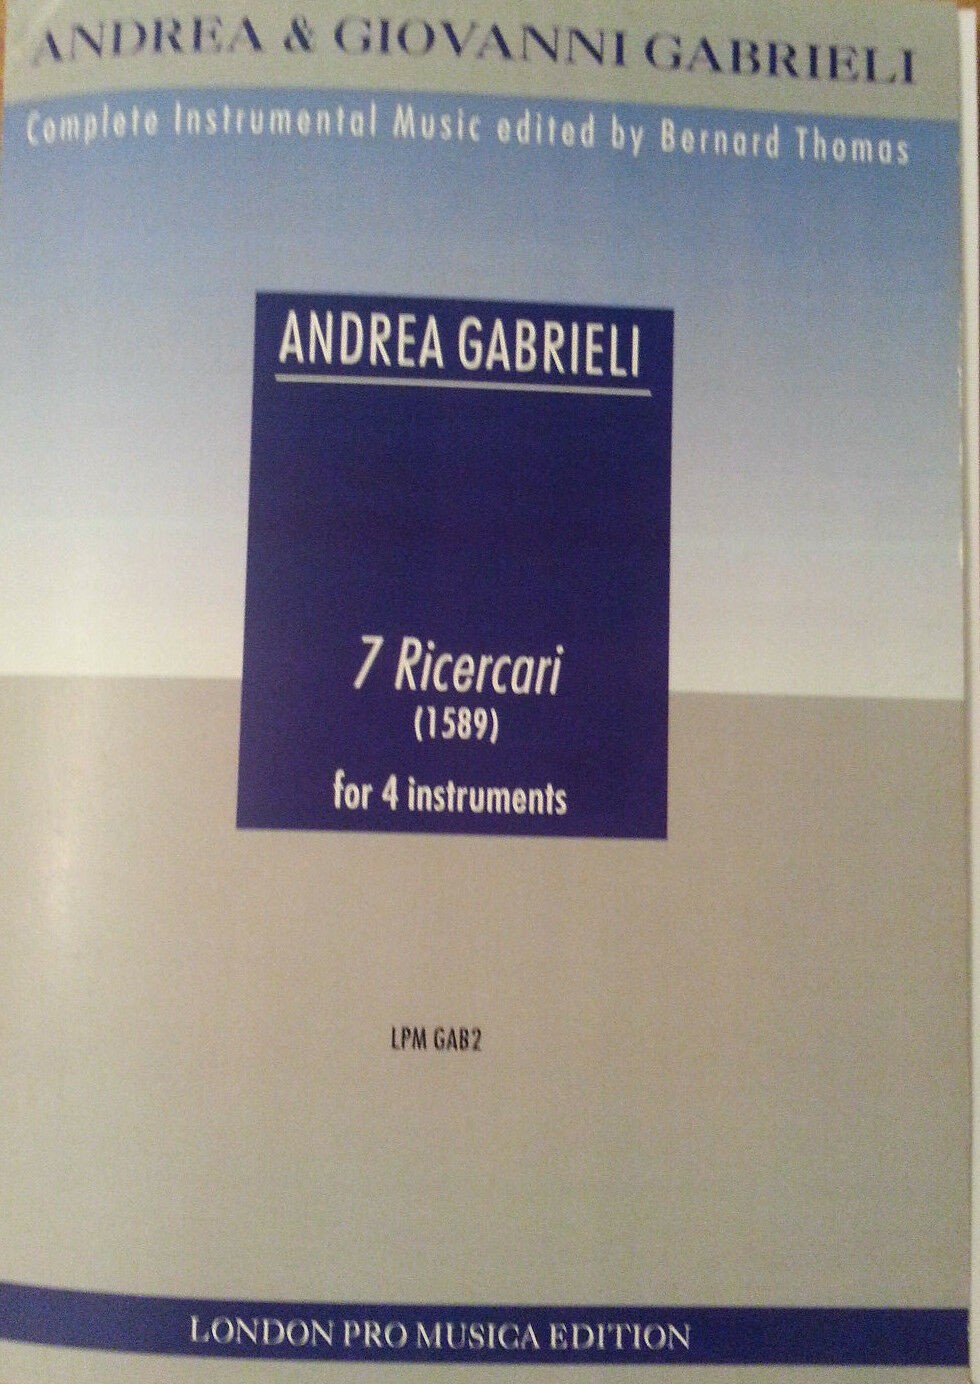 Andrea Gabrieli 7 Ricercari for 4 Instruments Sheet Music Book Score & Parts S58